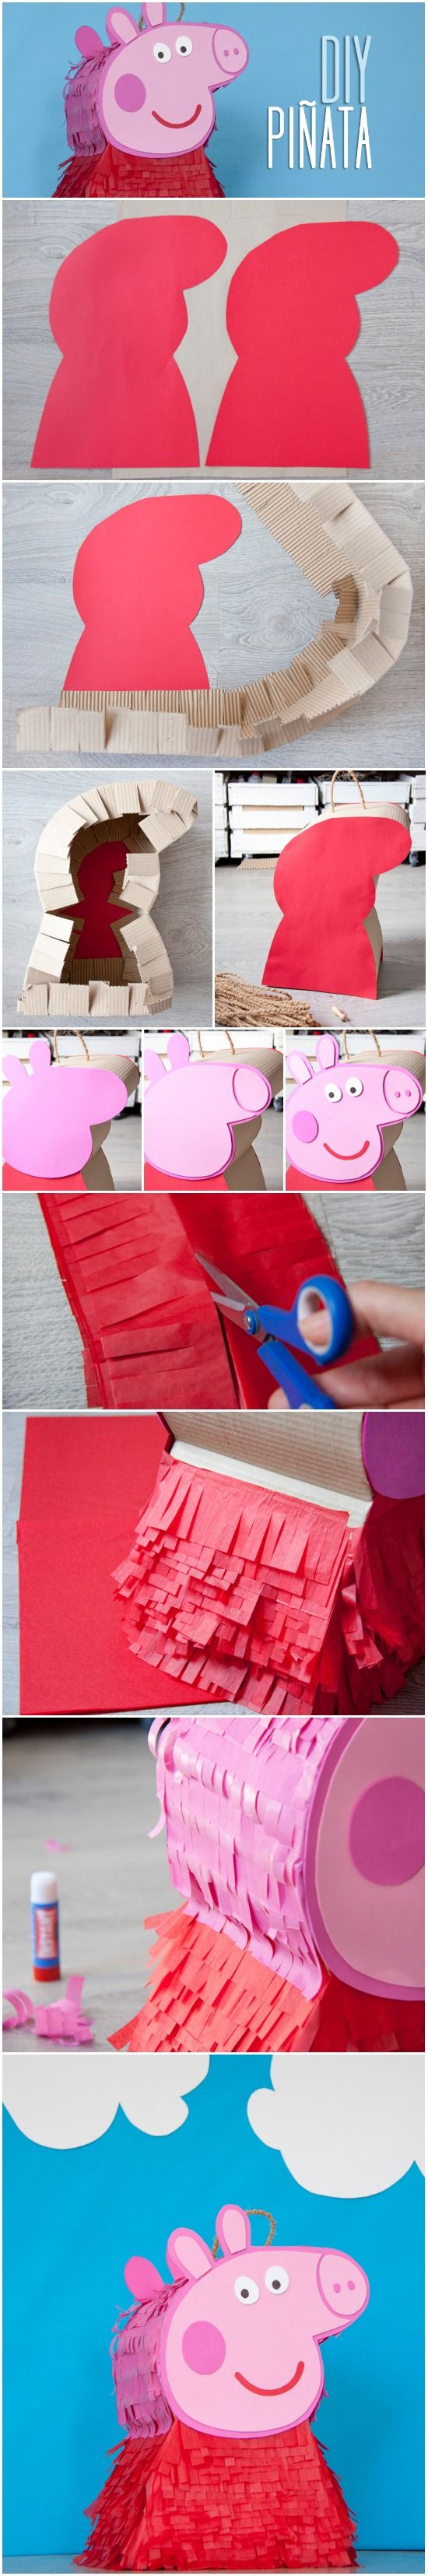 Tutorial DIY: Peppa Pig Pinata